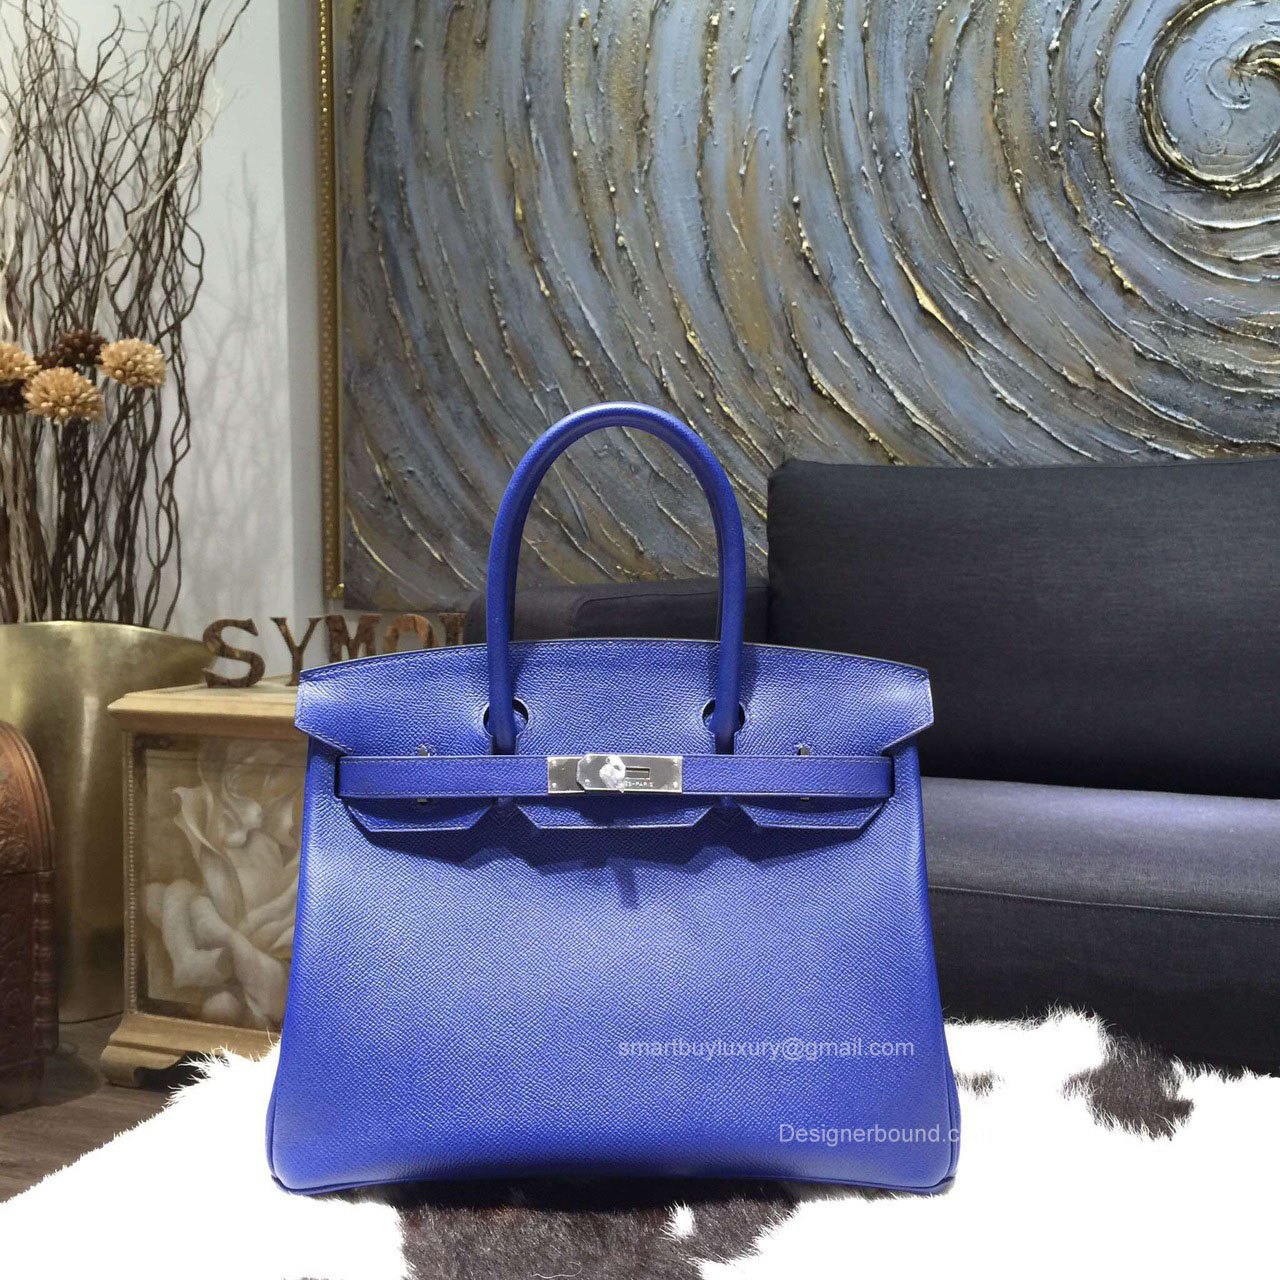 Hermes Birkin 35 Bag Electric Blue Epsom Leather Handstitched Silver hw